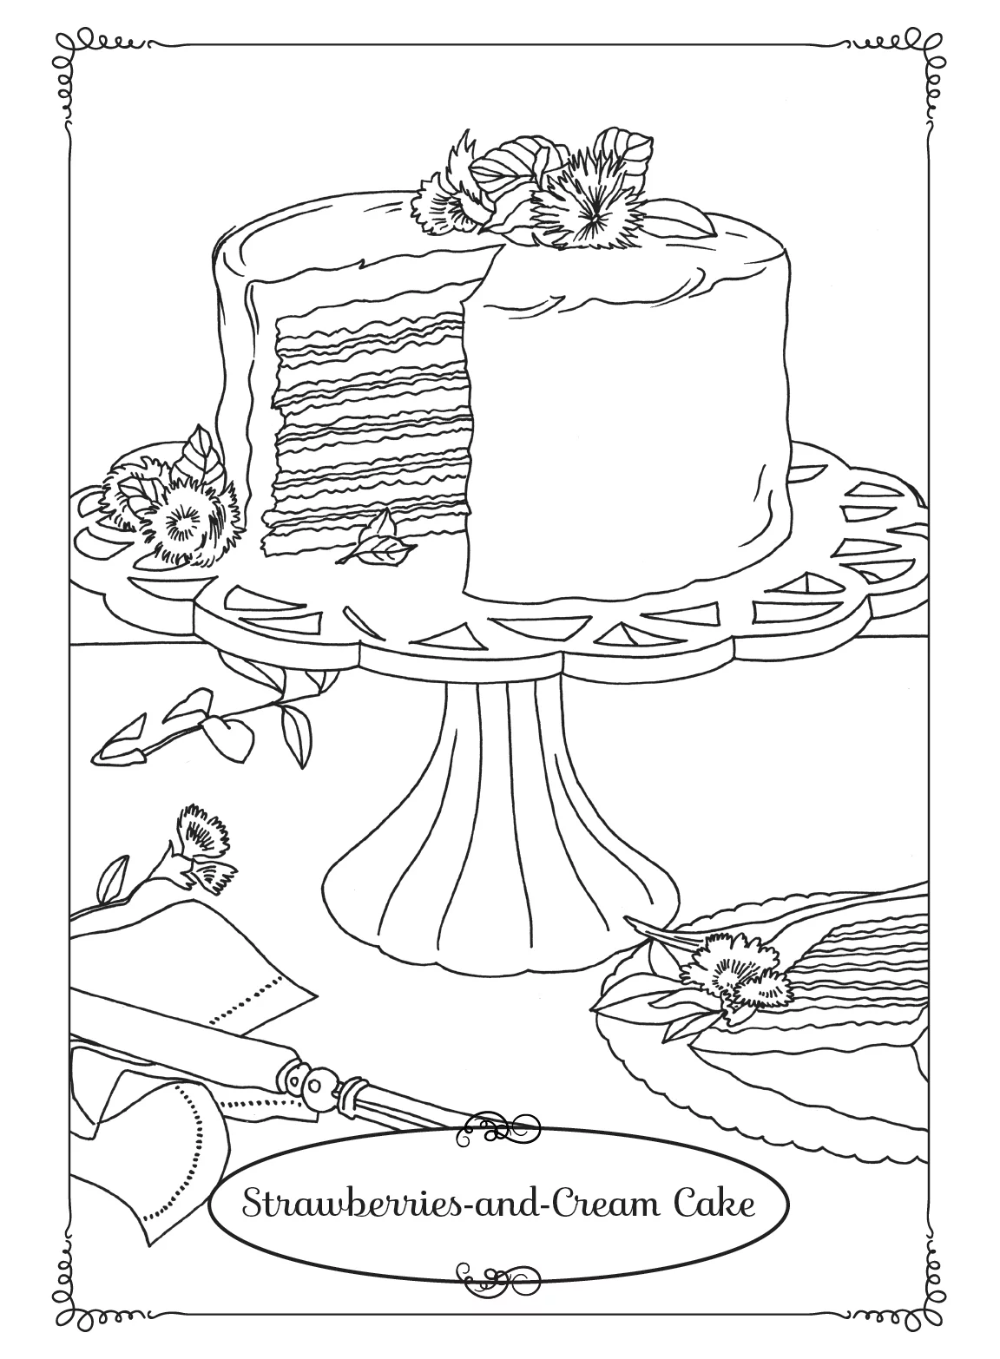 strawberry cake coloring pages strawberry cheese cake coloring page cookie pinterest coloring strawberry pages cake